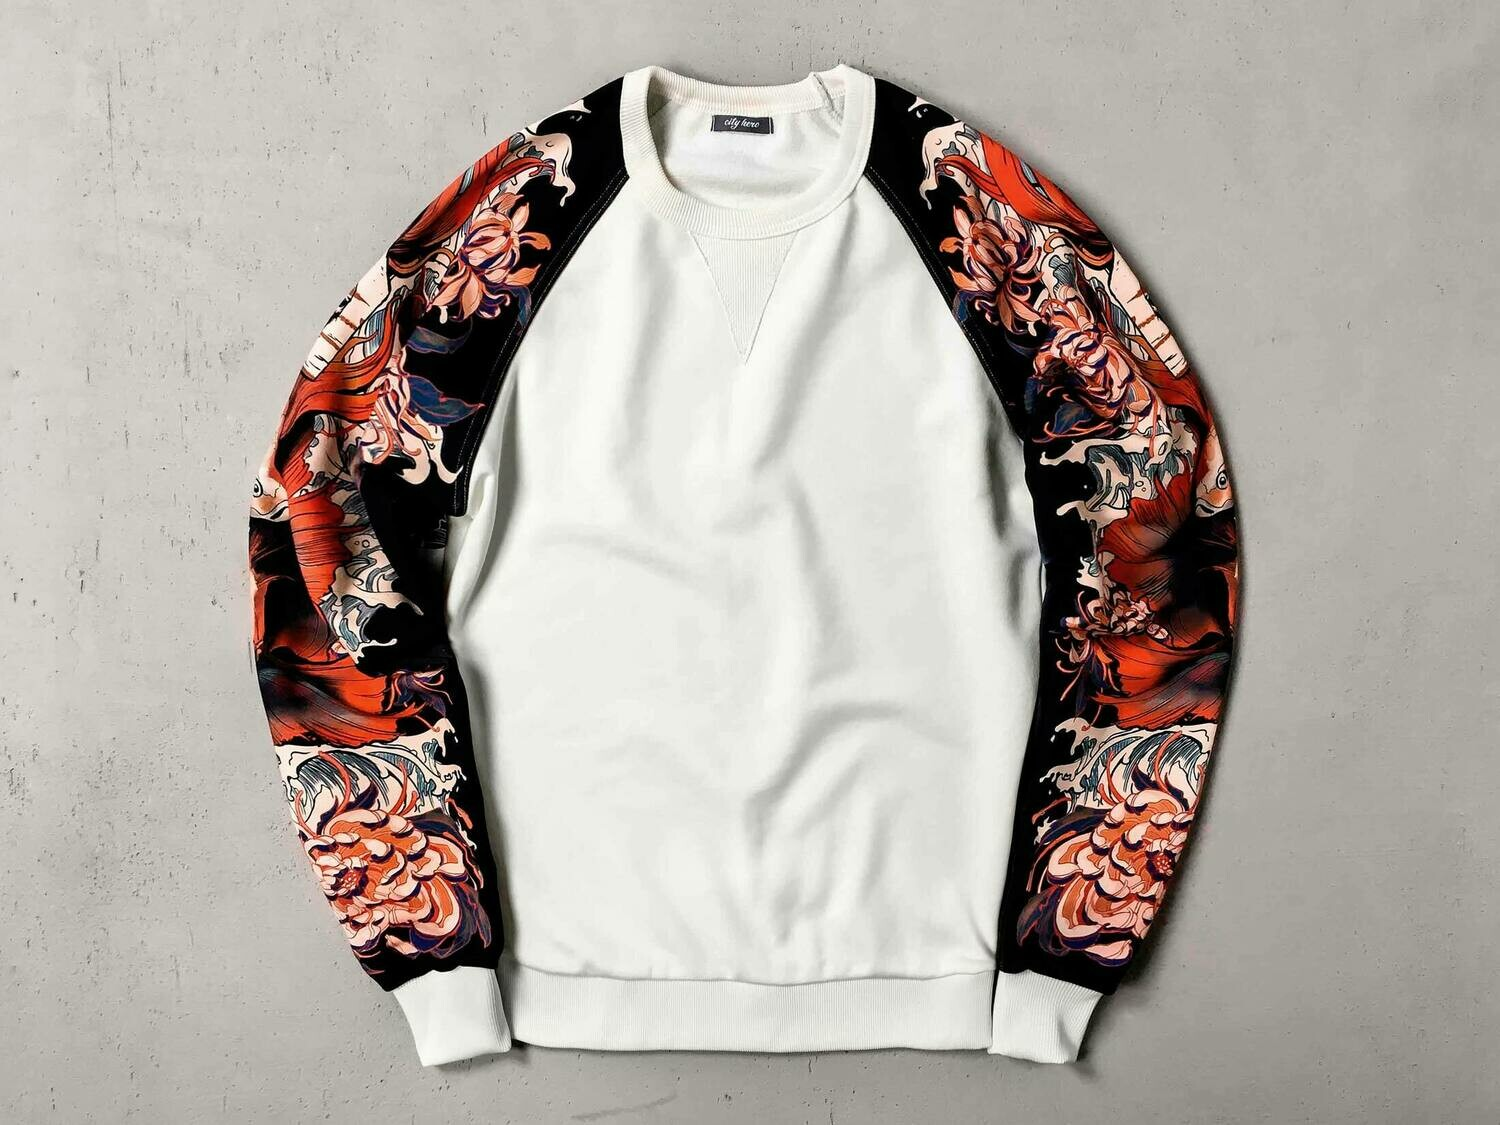 PACIFIC [SWEATSHIRT UNISEX]